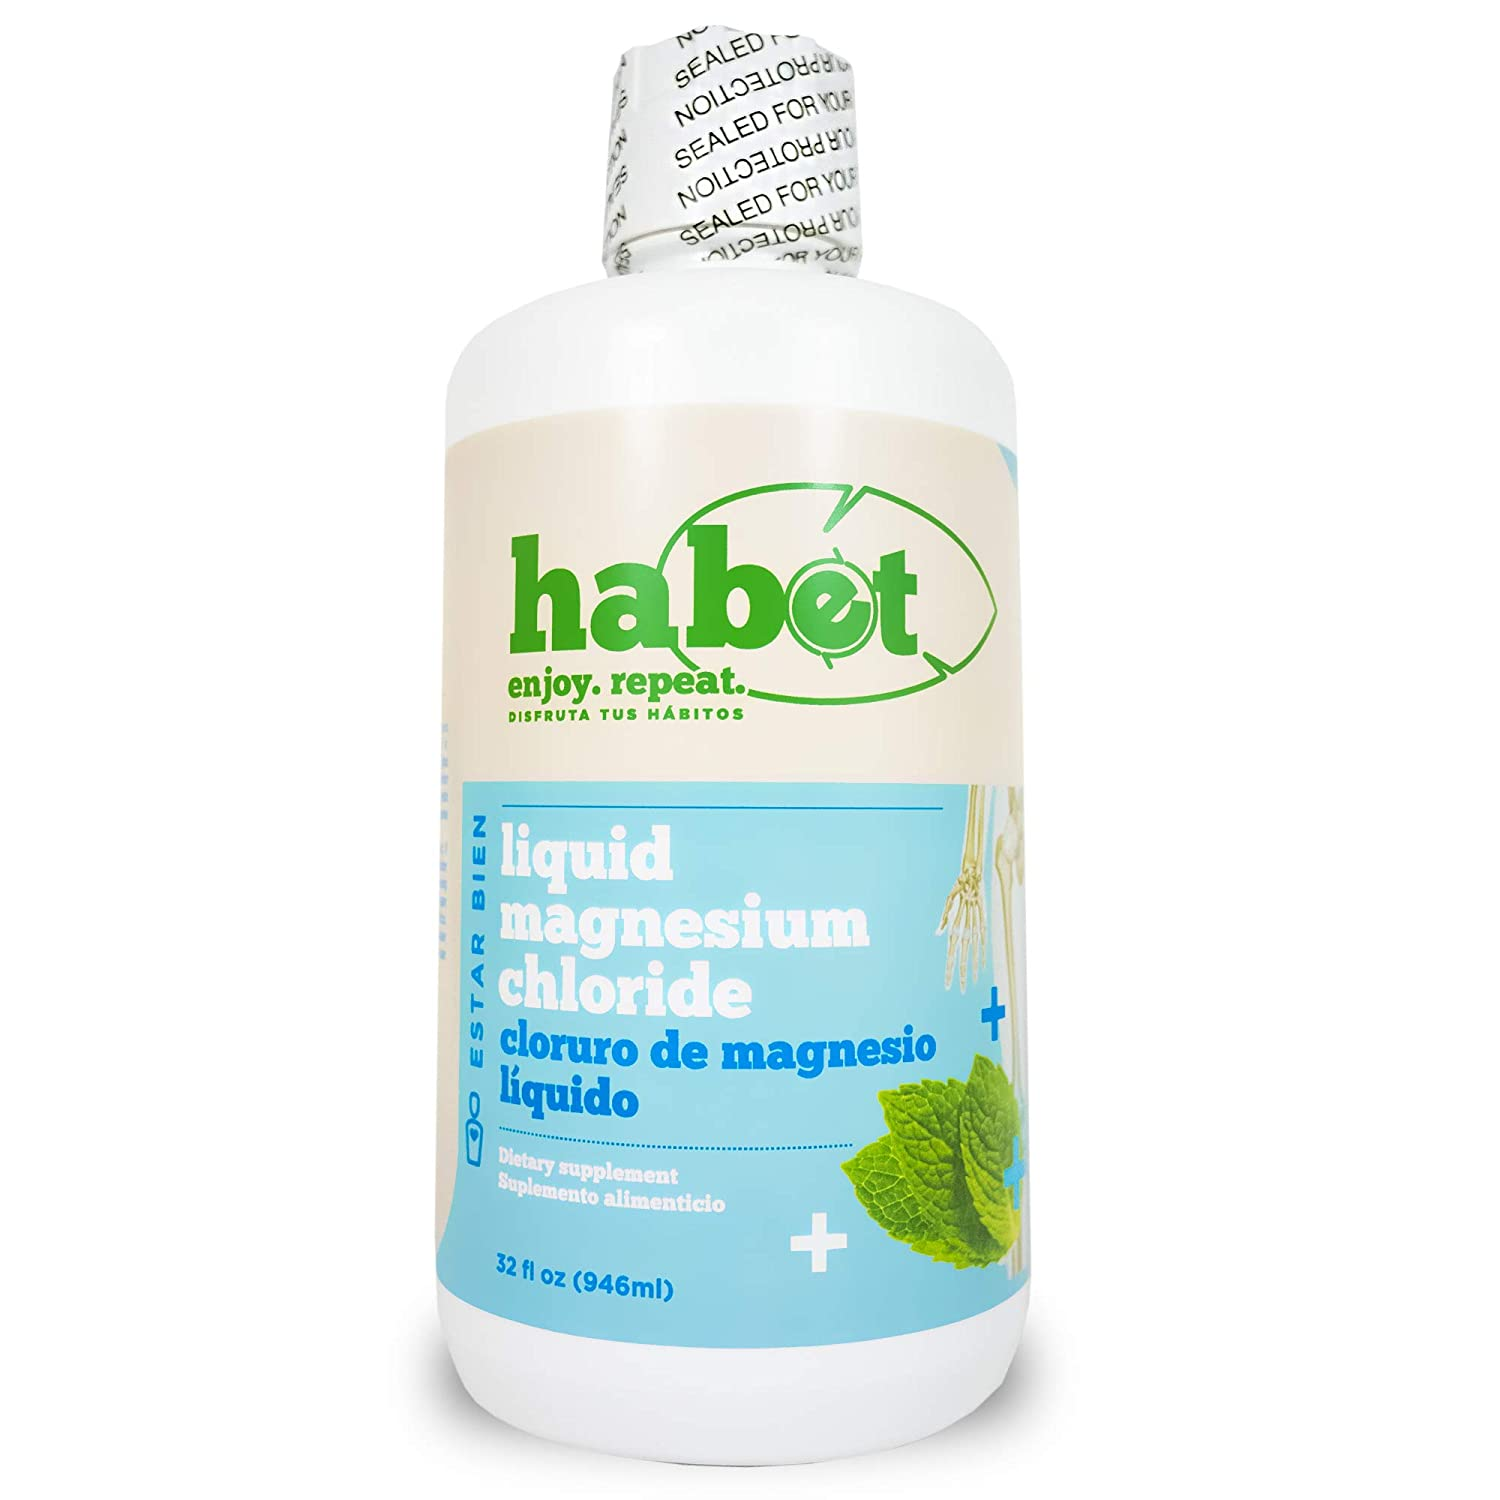 Amazon.com: Habet - Liquid Magnesium Chloride Mineral Hypoallergenic Supplement - High Absorption Hexahydrate Concentrate, 299 mg Elemental Magnesium, ...